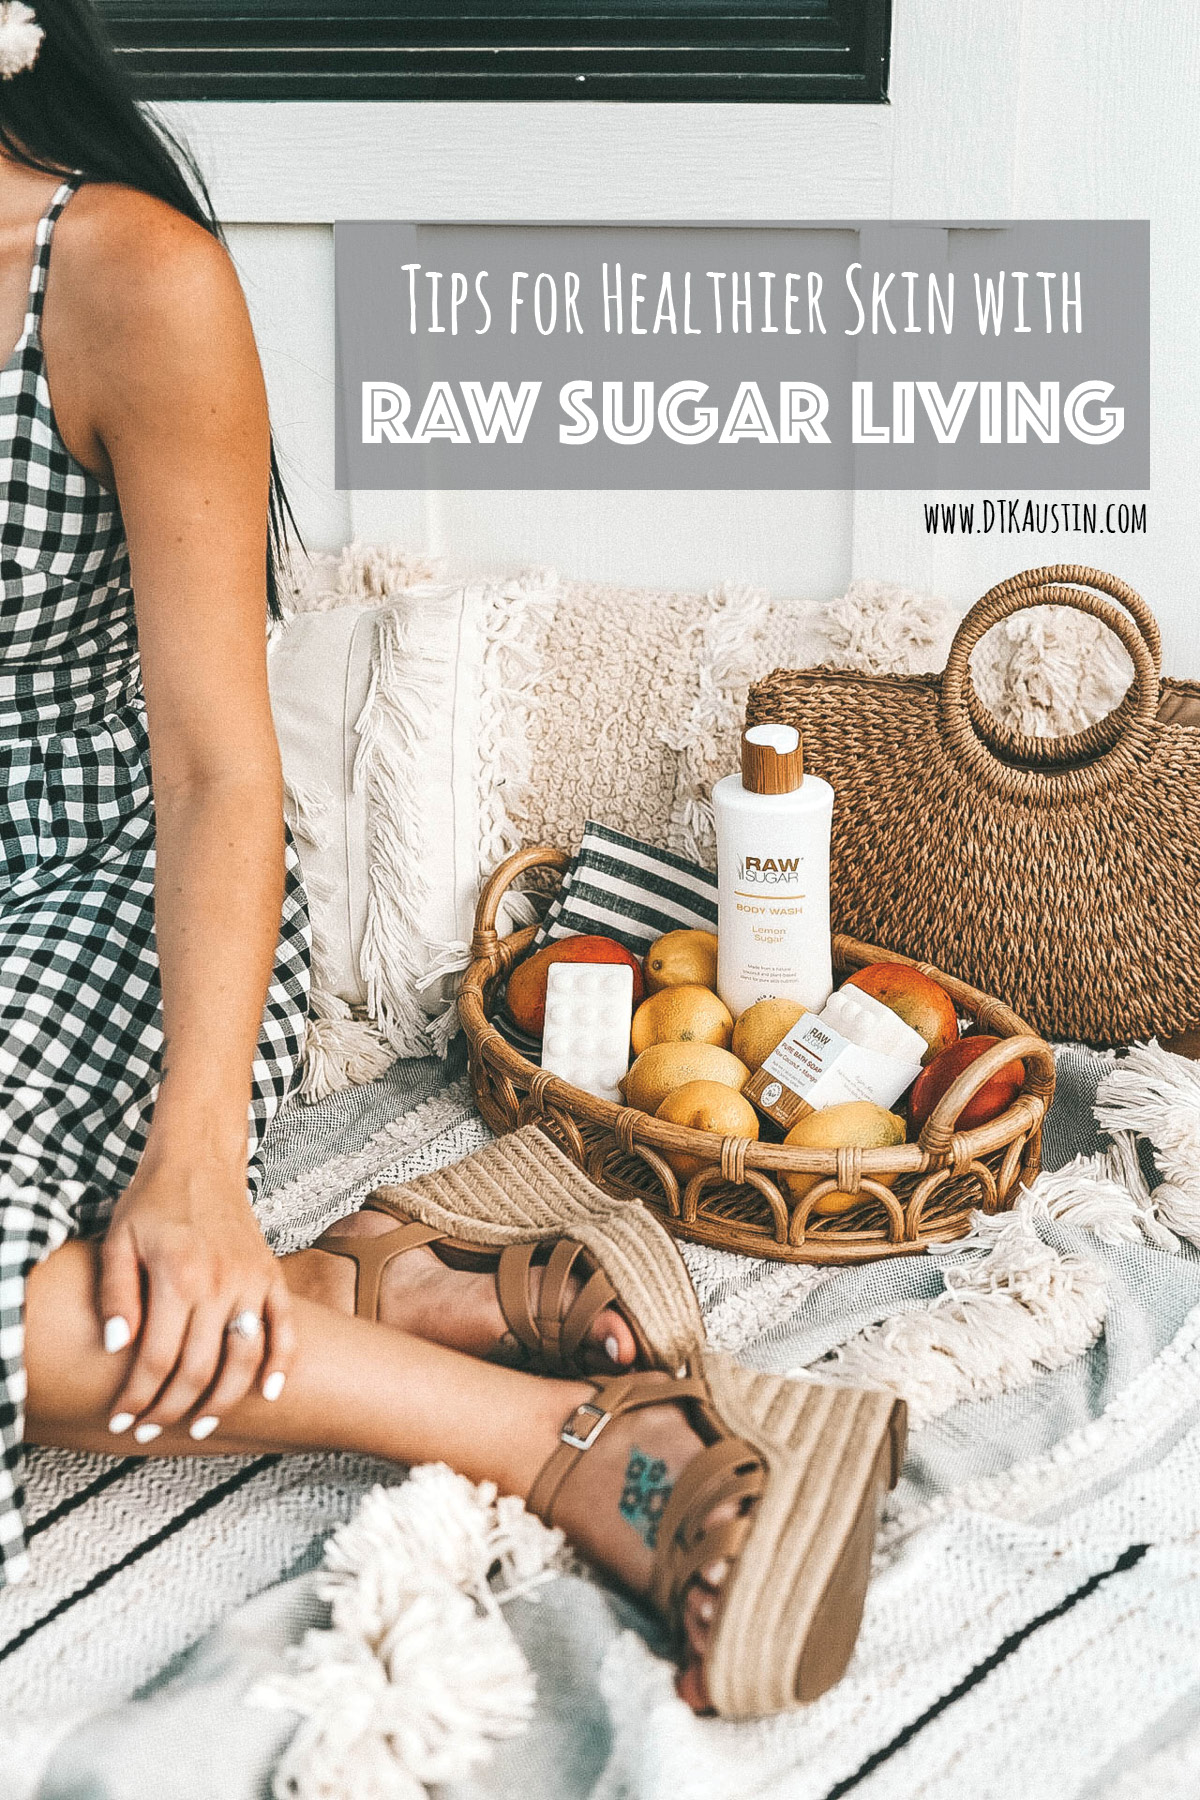 #rawsugar #skincare #beauty #healthyskin #dtkaustin - {Why I Have Used Raw Sugar Living for 10+ Years + GIVEAWAY} featured by popular Austin beauty blogger Dressed to Kill